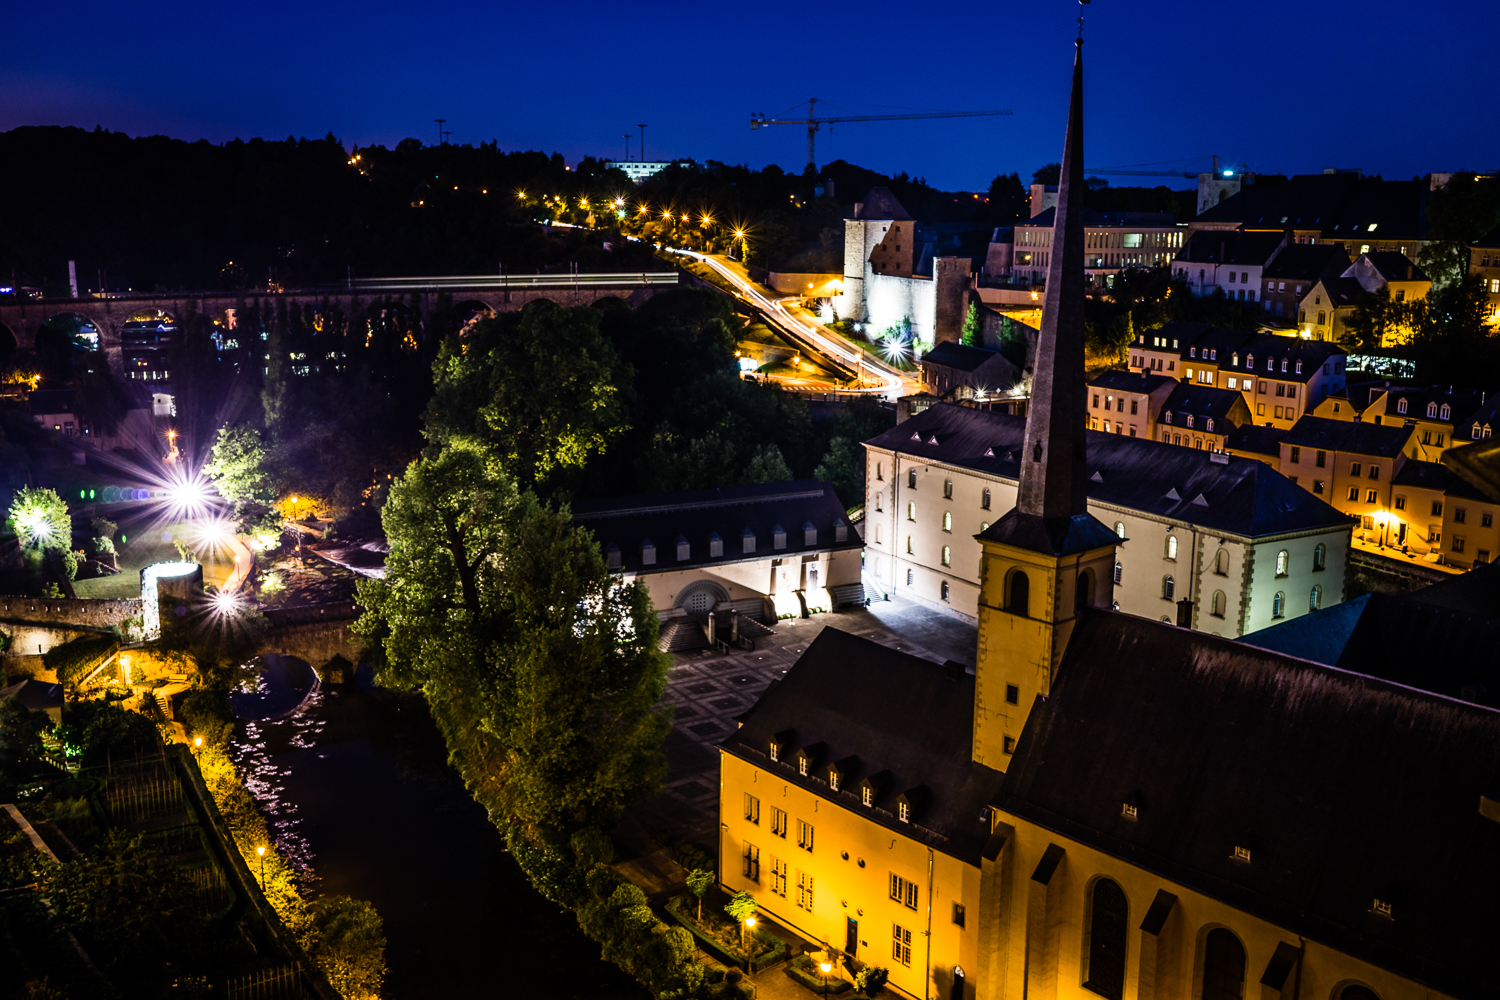 20140611 Luxembourg by night - RX1R - 01586.jpg